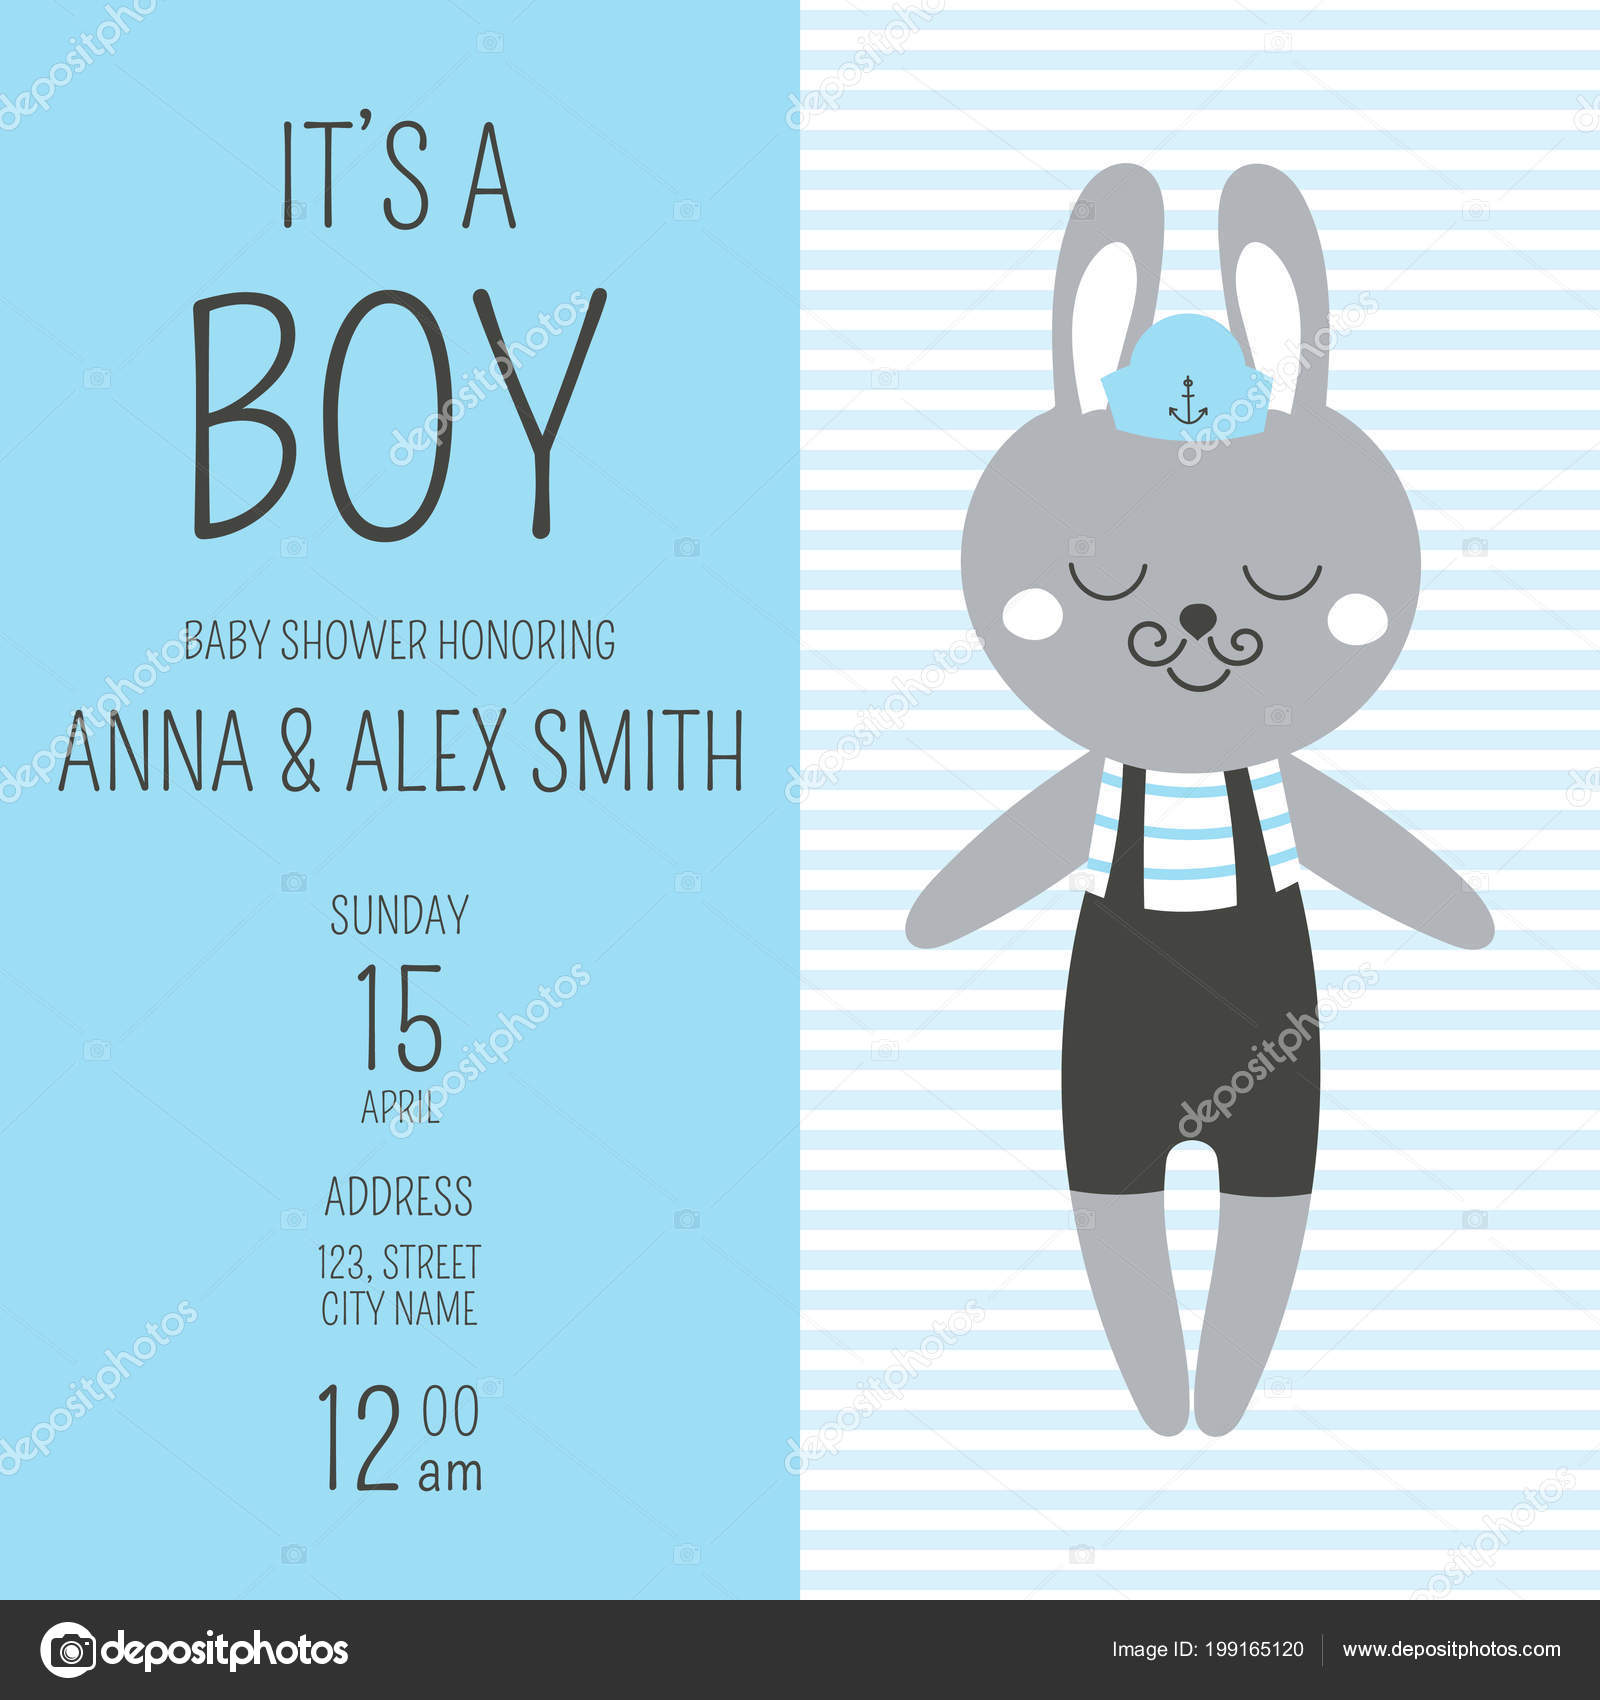 Printable Nautical Baby Shower Invitations Templates Cute